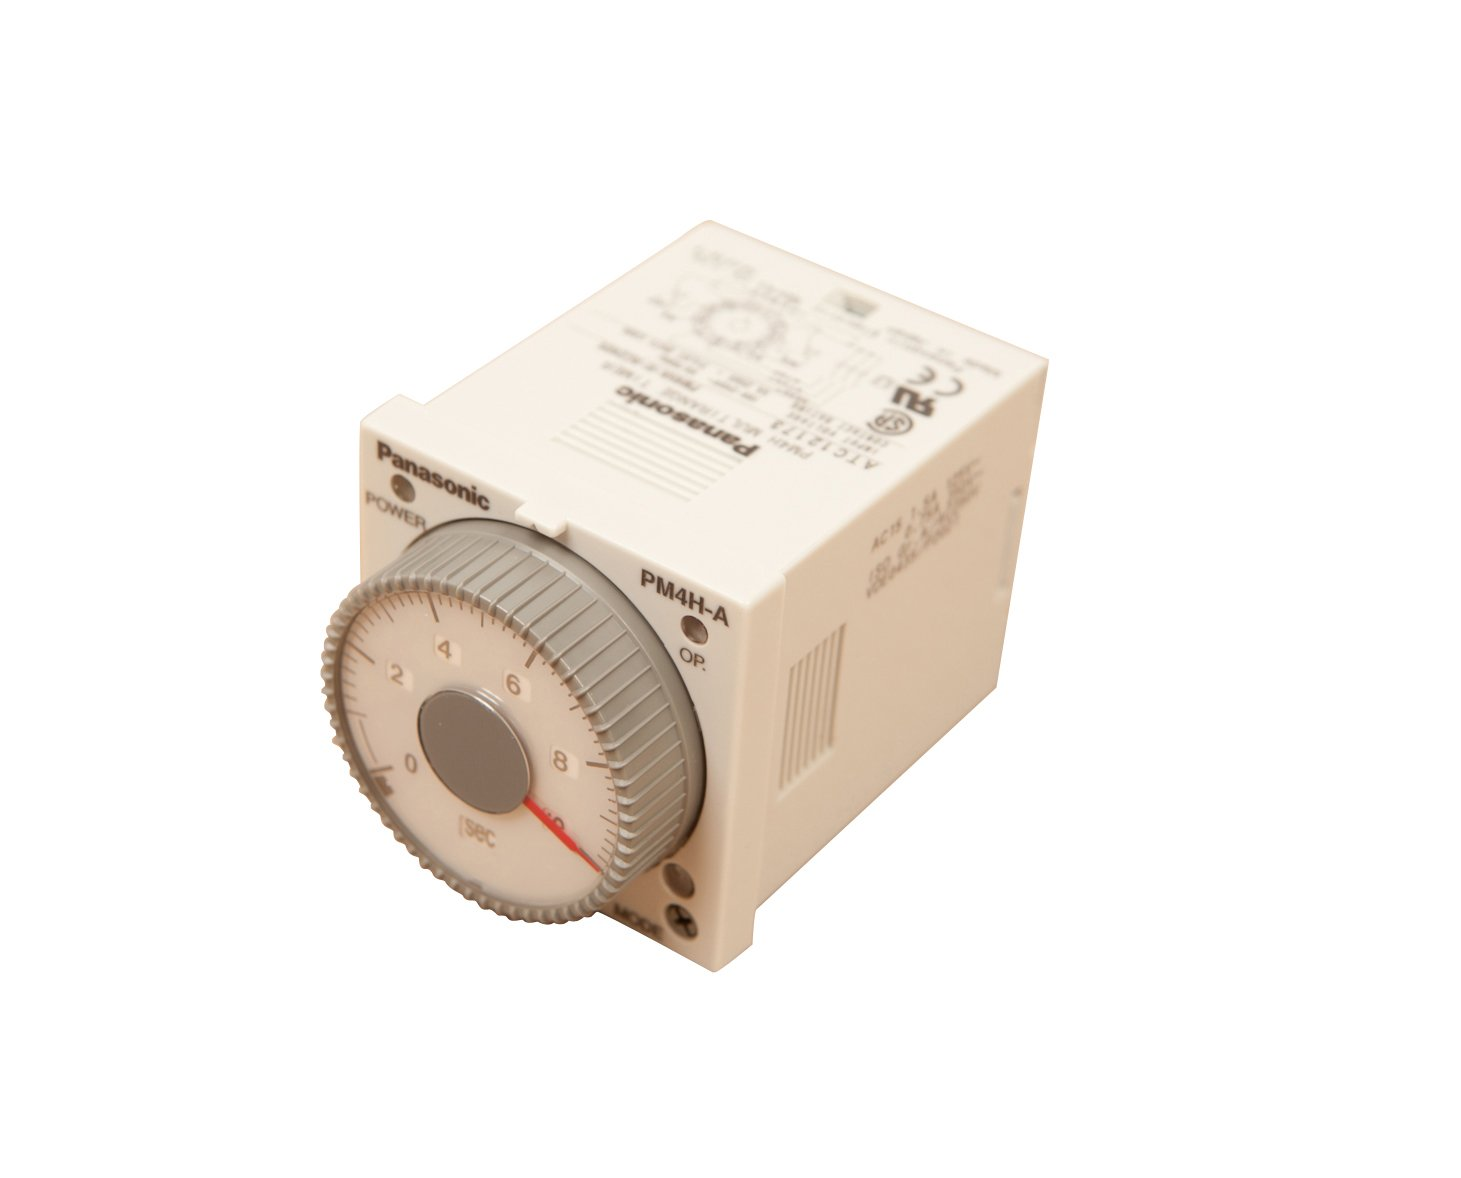 Power Soak Systems Inc 24223 Wash Cycle Timer, 240 Volt